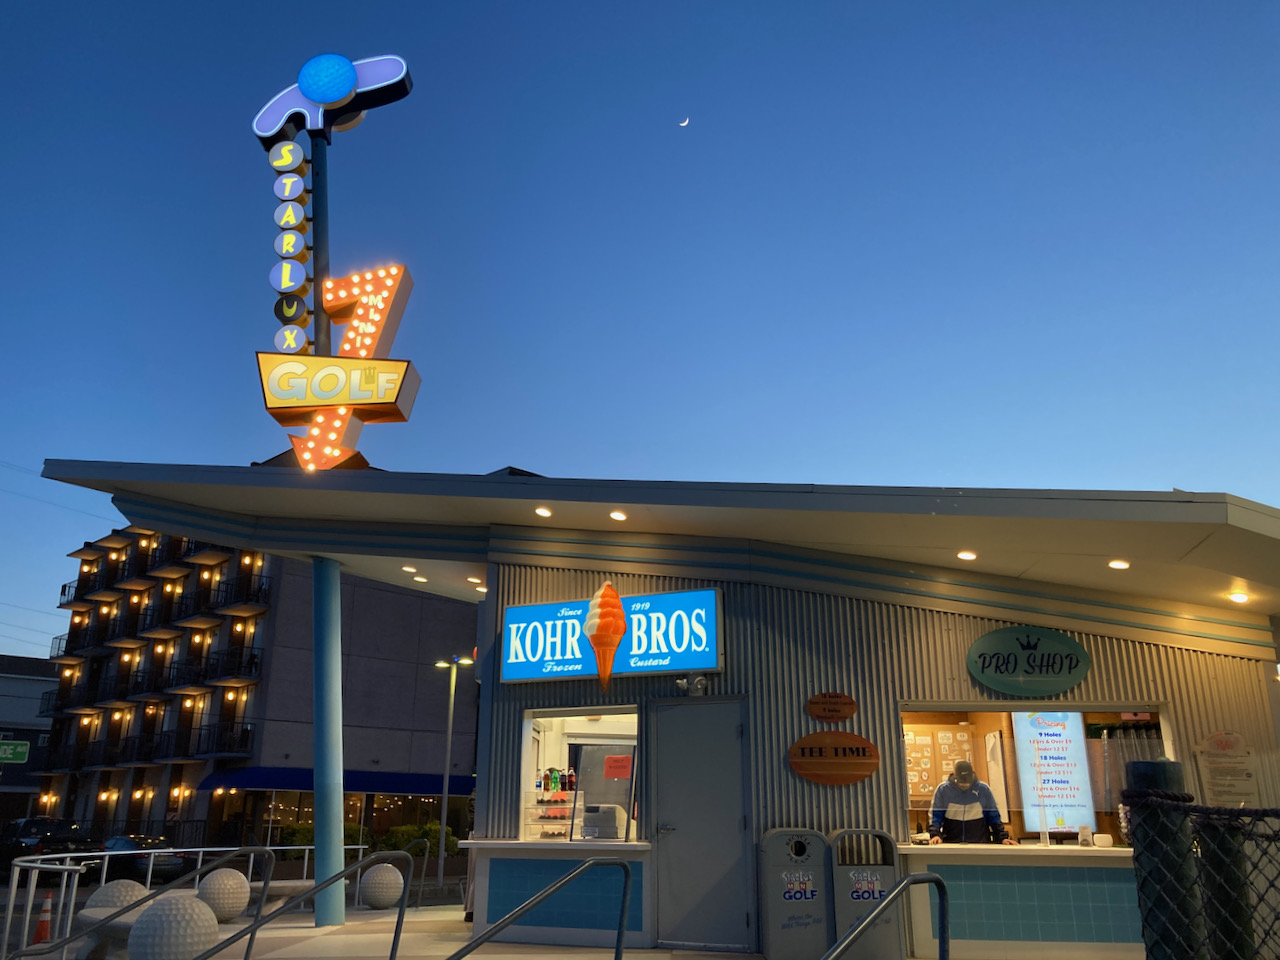 Exterior of Kohr Bros. frozen custard shop, with doo wop style sign for Starlux Golf on top of building.